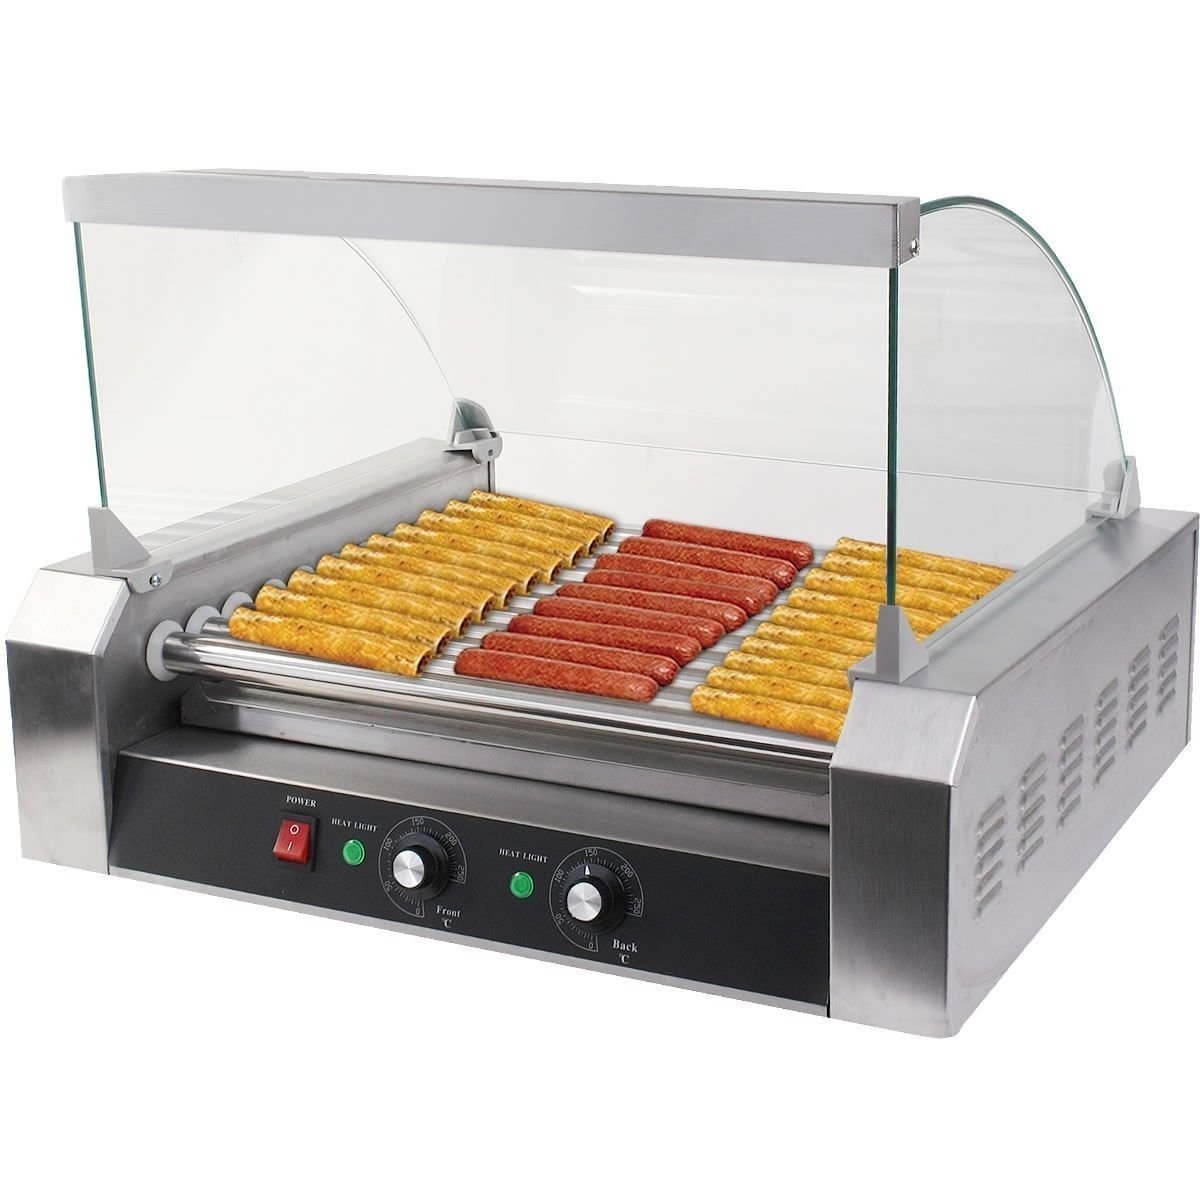 Safeplus Electric Hot-dog Grill Commercial Hotdog Maker Warmer Cooker Grilling Machine with Cover 11-rollers by Safeplus